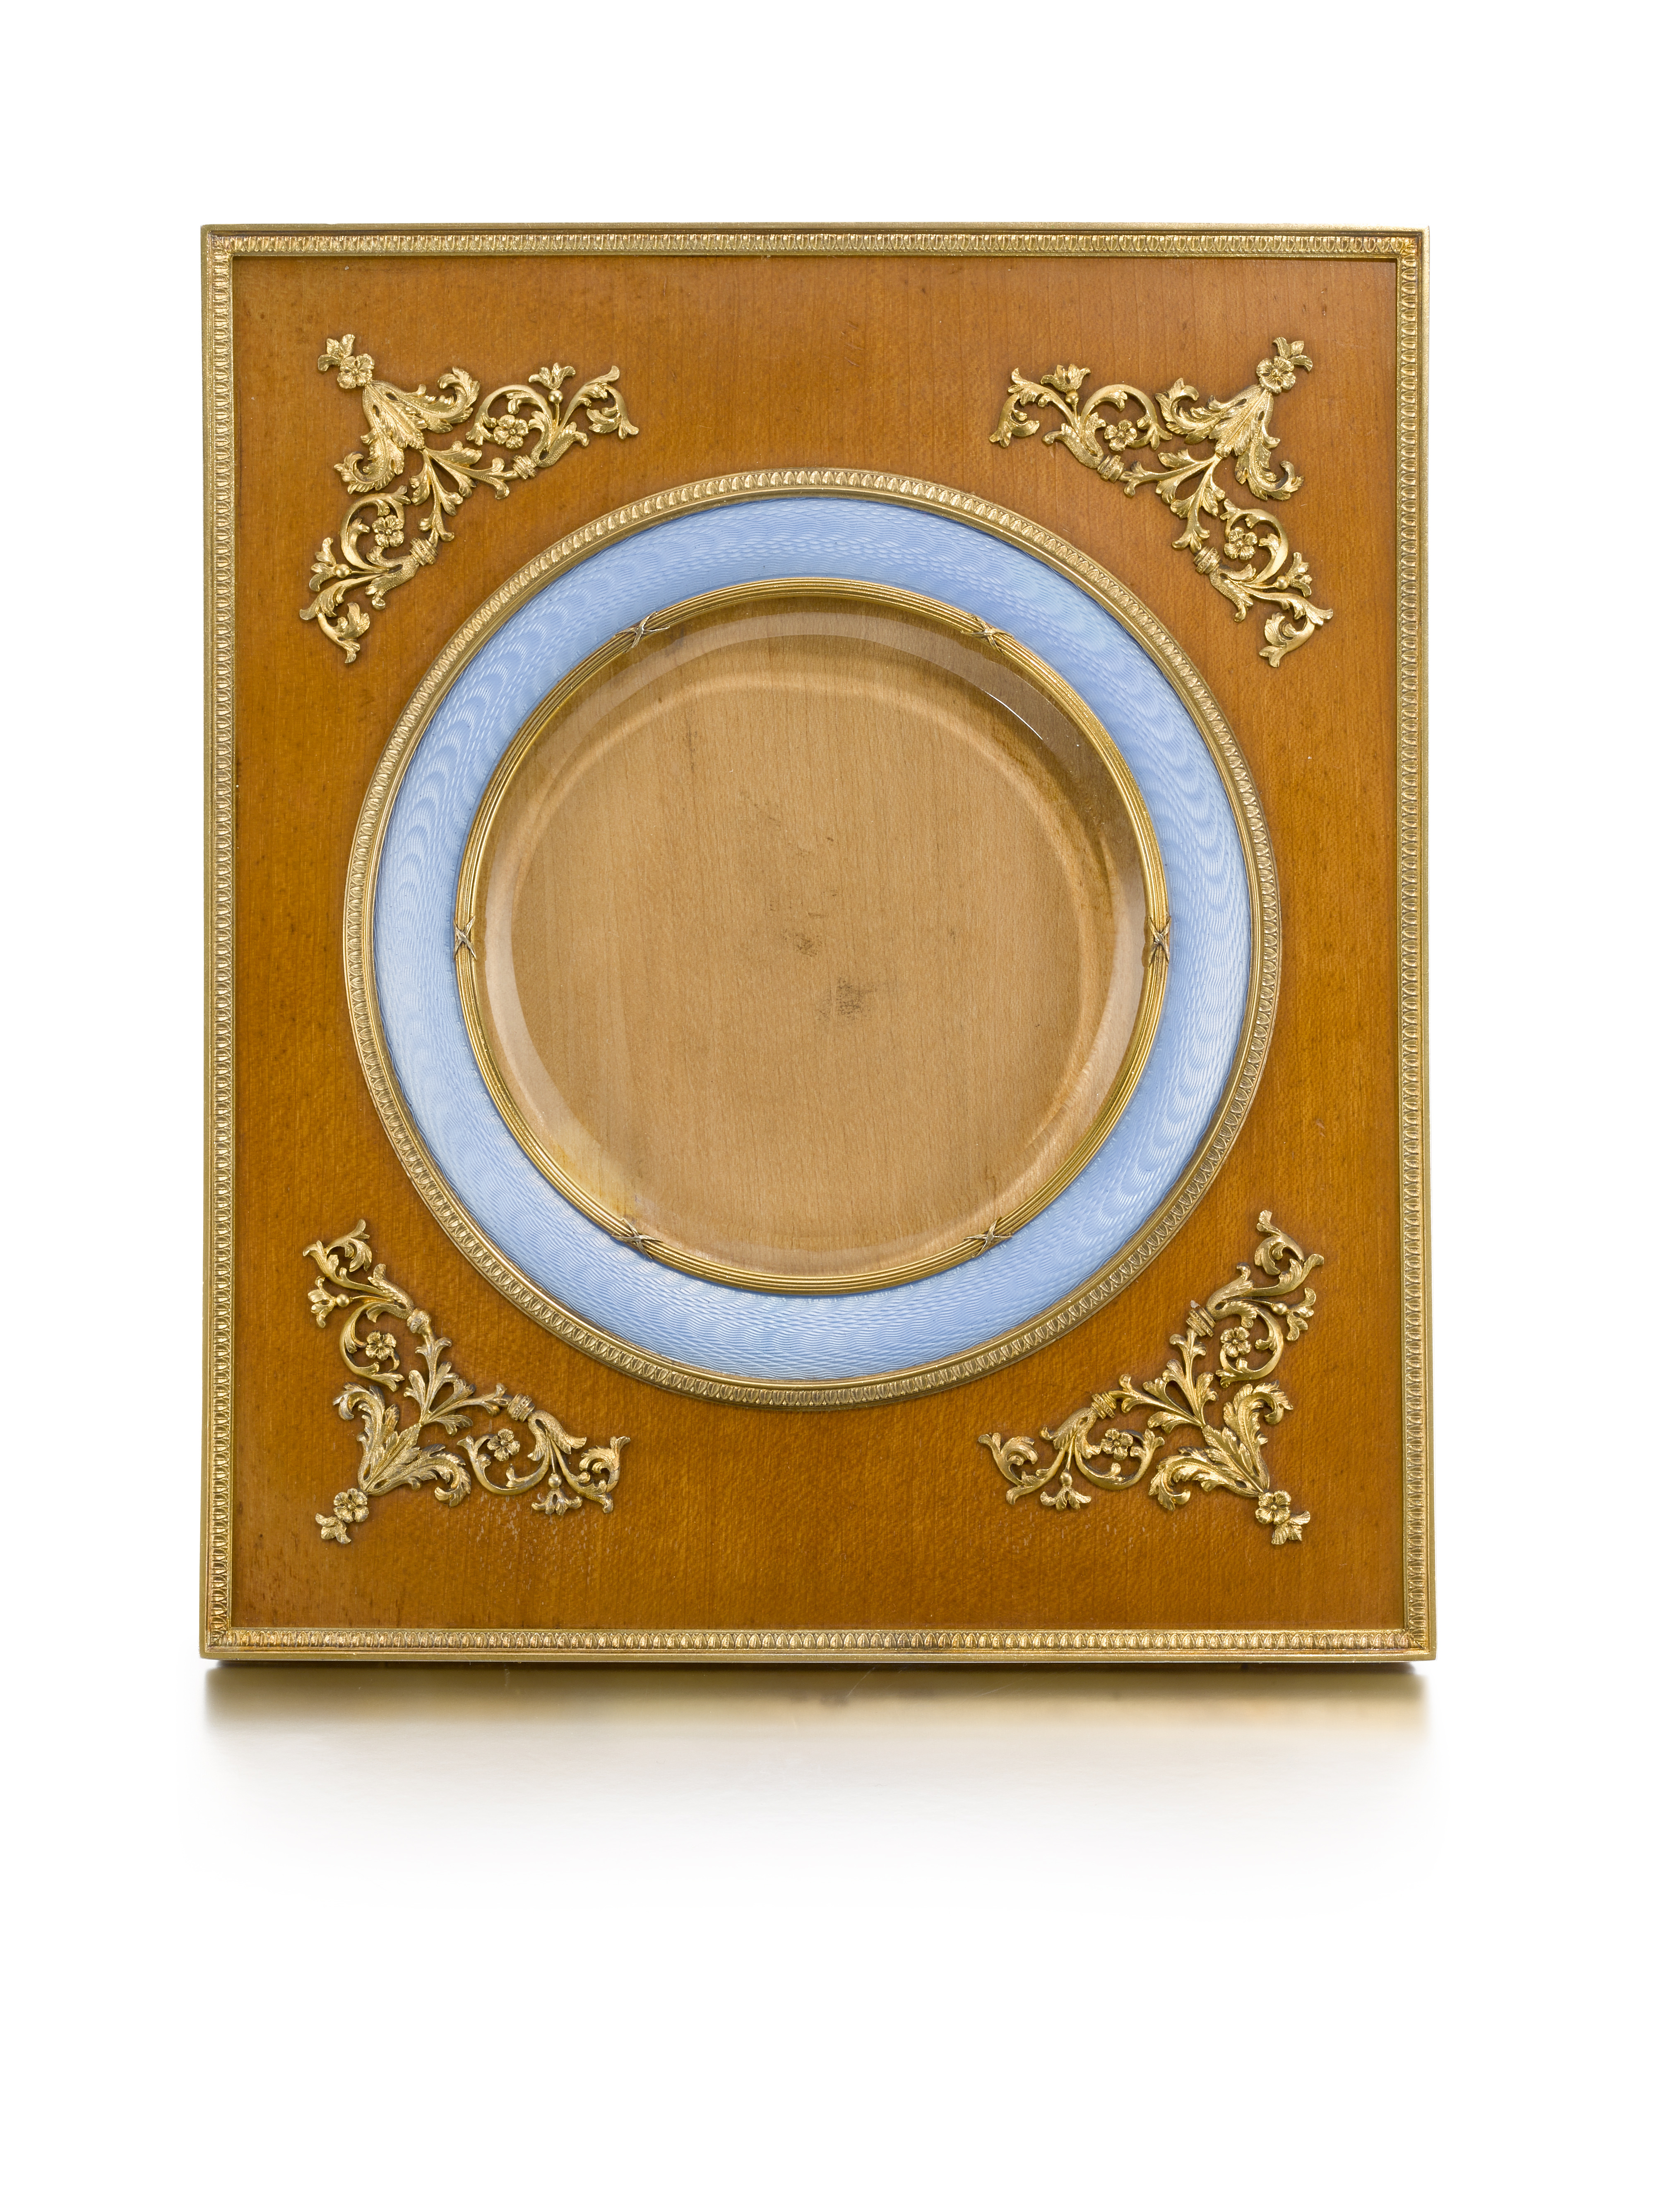 View 1 of Lot 253. A Fabergé wood and enamel frame, Third Artel, St Petersburg, 1908-1917.